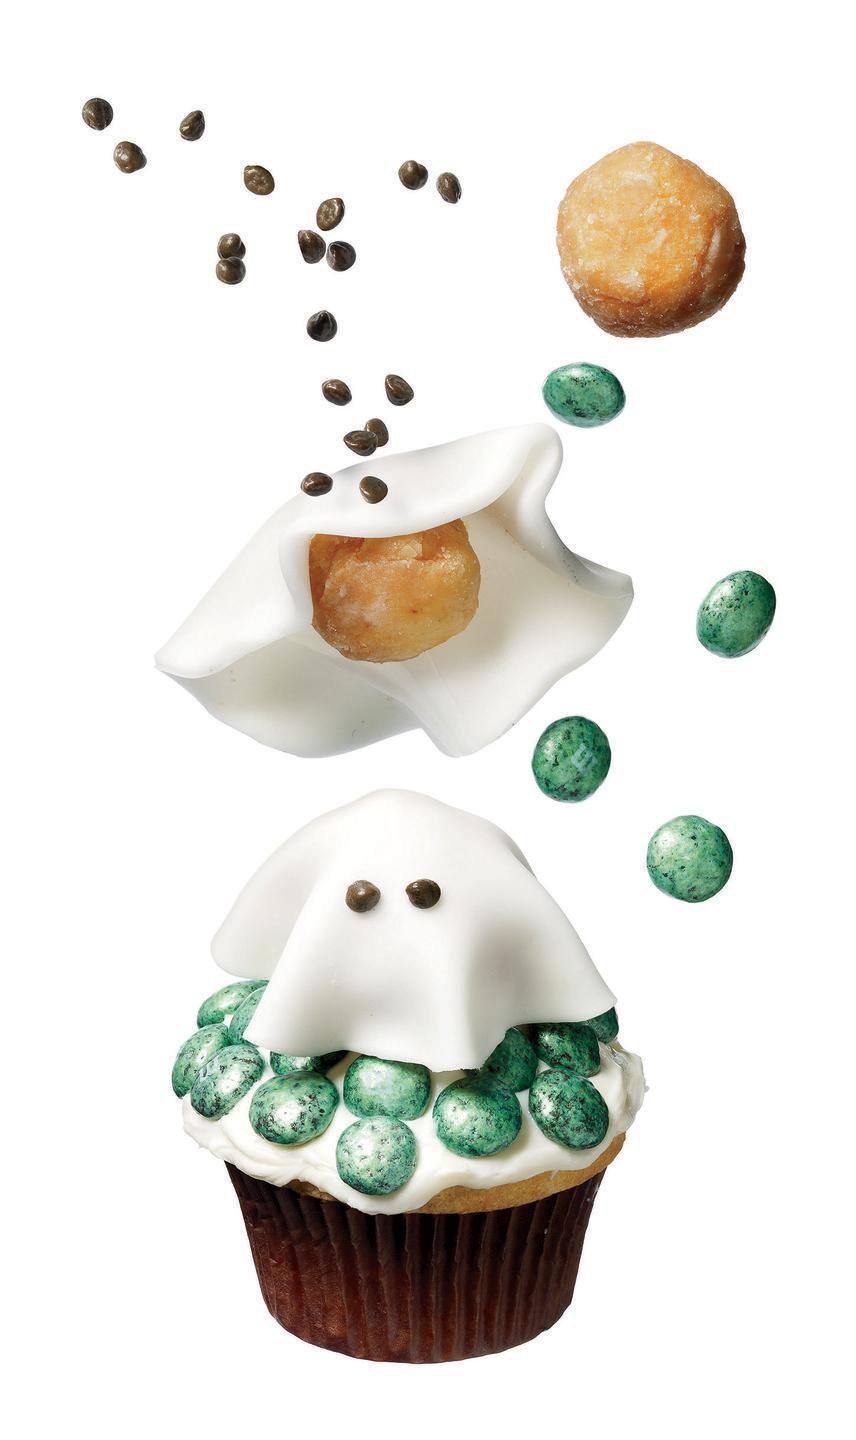 """<p>Float a fondant-covered doughnut hole on a bed of vanilla frosting dotted with mint chocolate M&M's for the sweetest ghost we've ever seen.</p><p><em><a href=""""https://www.womansday.com/food-recipes/food-drinks/recipes/a11455/friendly-ghost-cupcake-recipe-122729/"""" rel=""""nofollow noopener"""" target=""""_blank"""" data-ylk=""""slk:Get the recipe from Woman's Day »"""" class=""""link rapid-noclick-resp"""">Get the recipe from Woman's Day »</a></em></p>"""